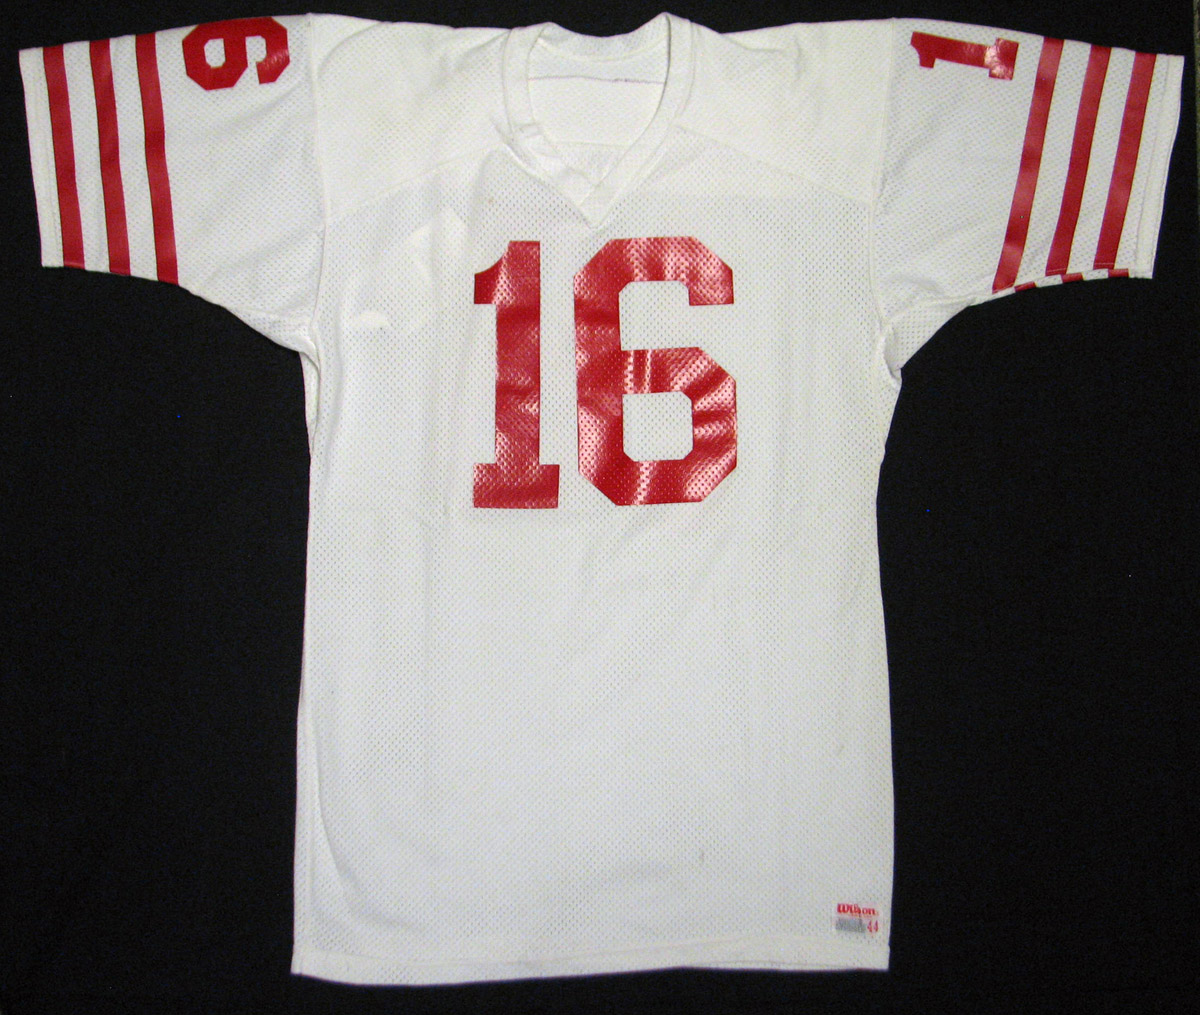 d99c08d54 1979-81 Joe Montana San Francisco 49ers Game Worn Rookie Era Jersey MEARS  A10 ...